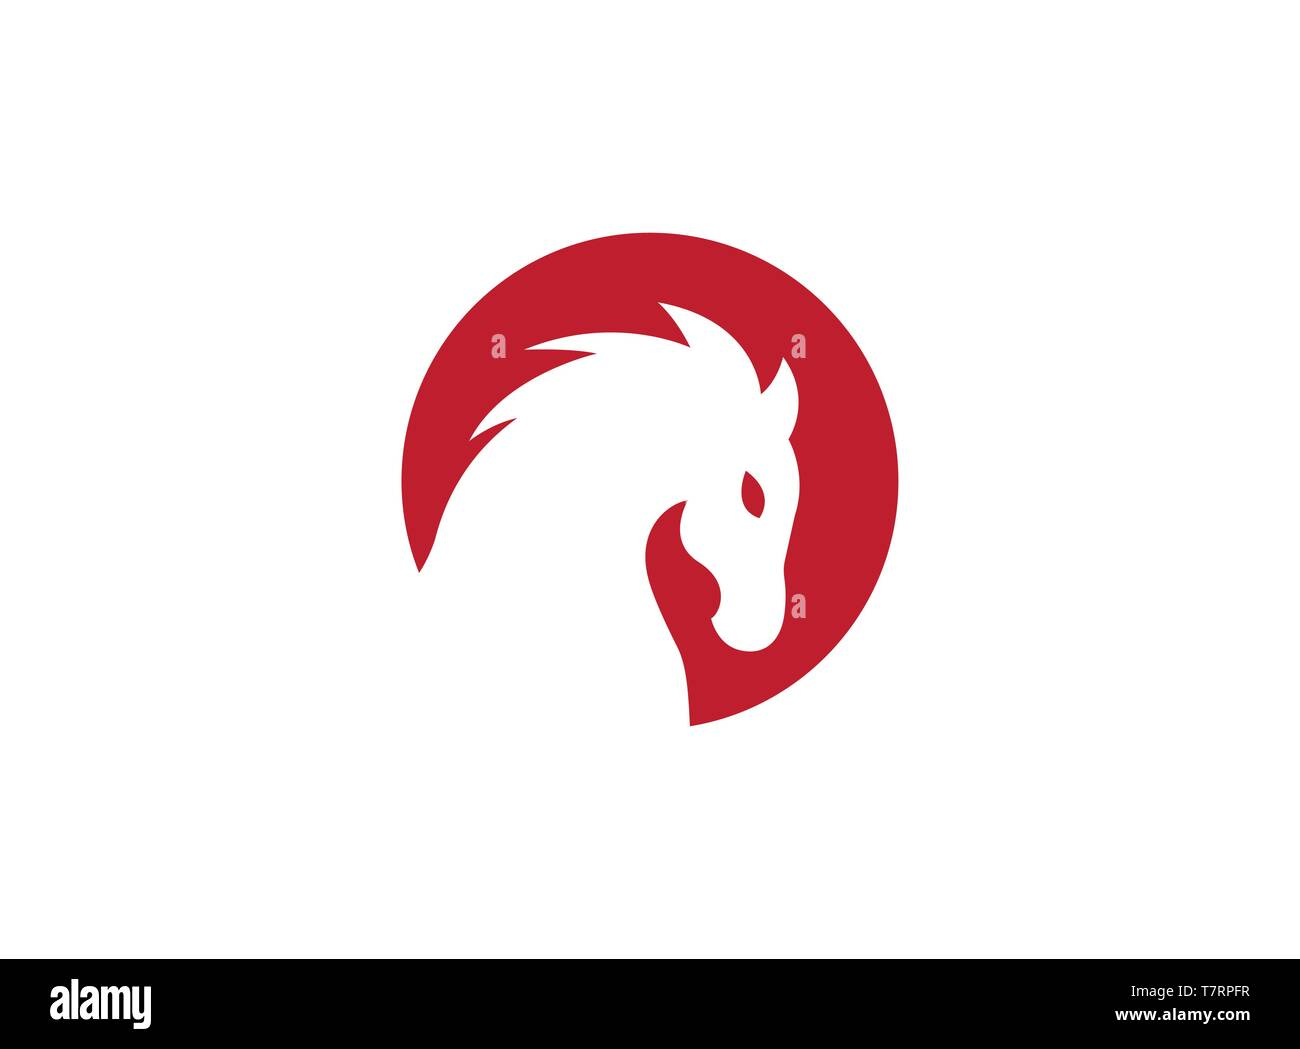 Horse head inside a red circle for logo - Stock Image